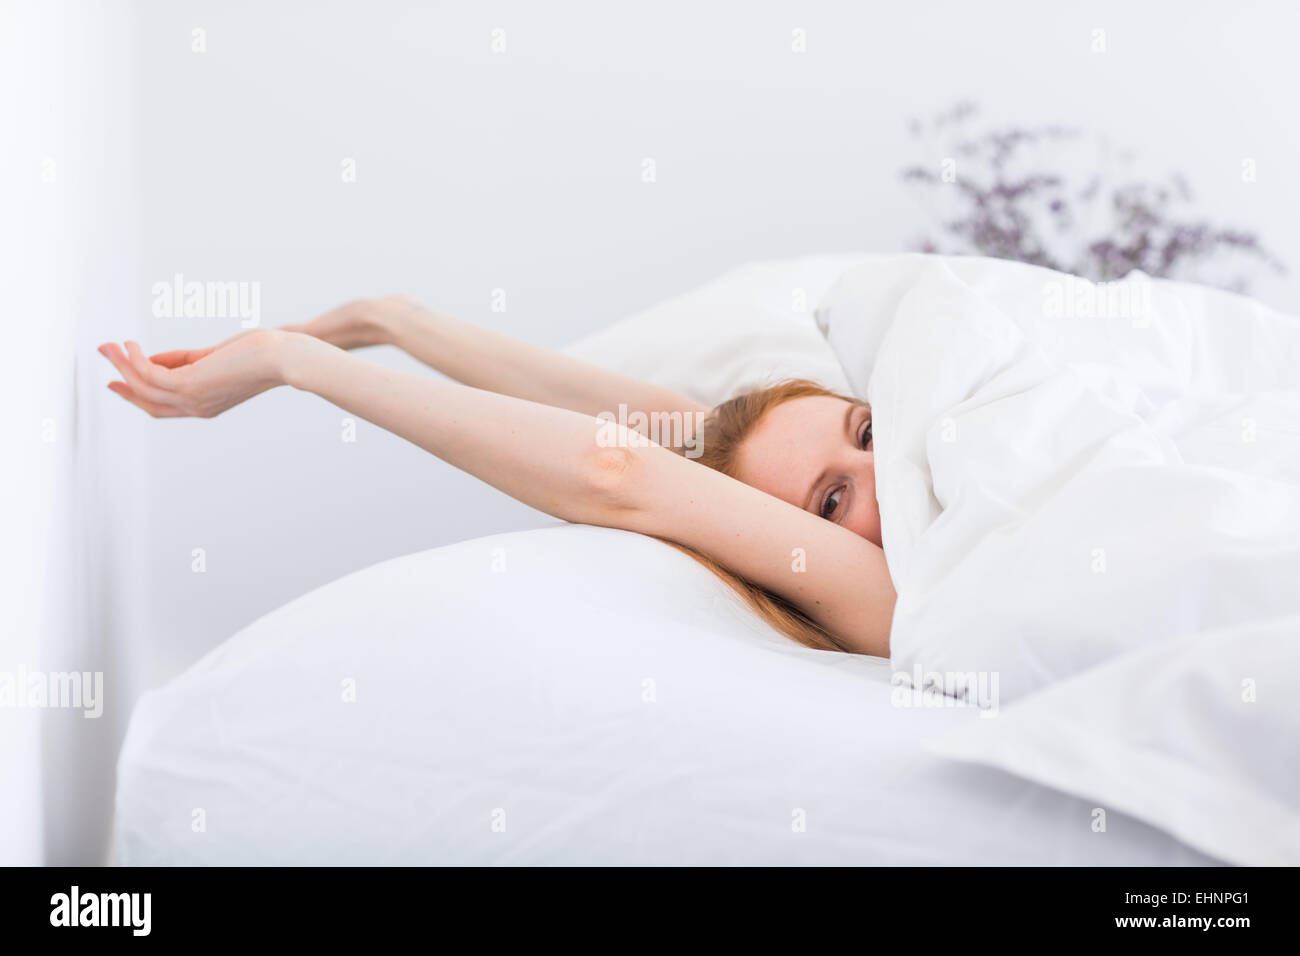 Woman waking up and stretching in bed. Stock Photo